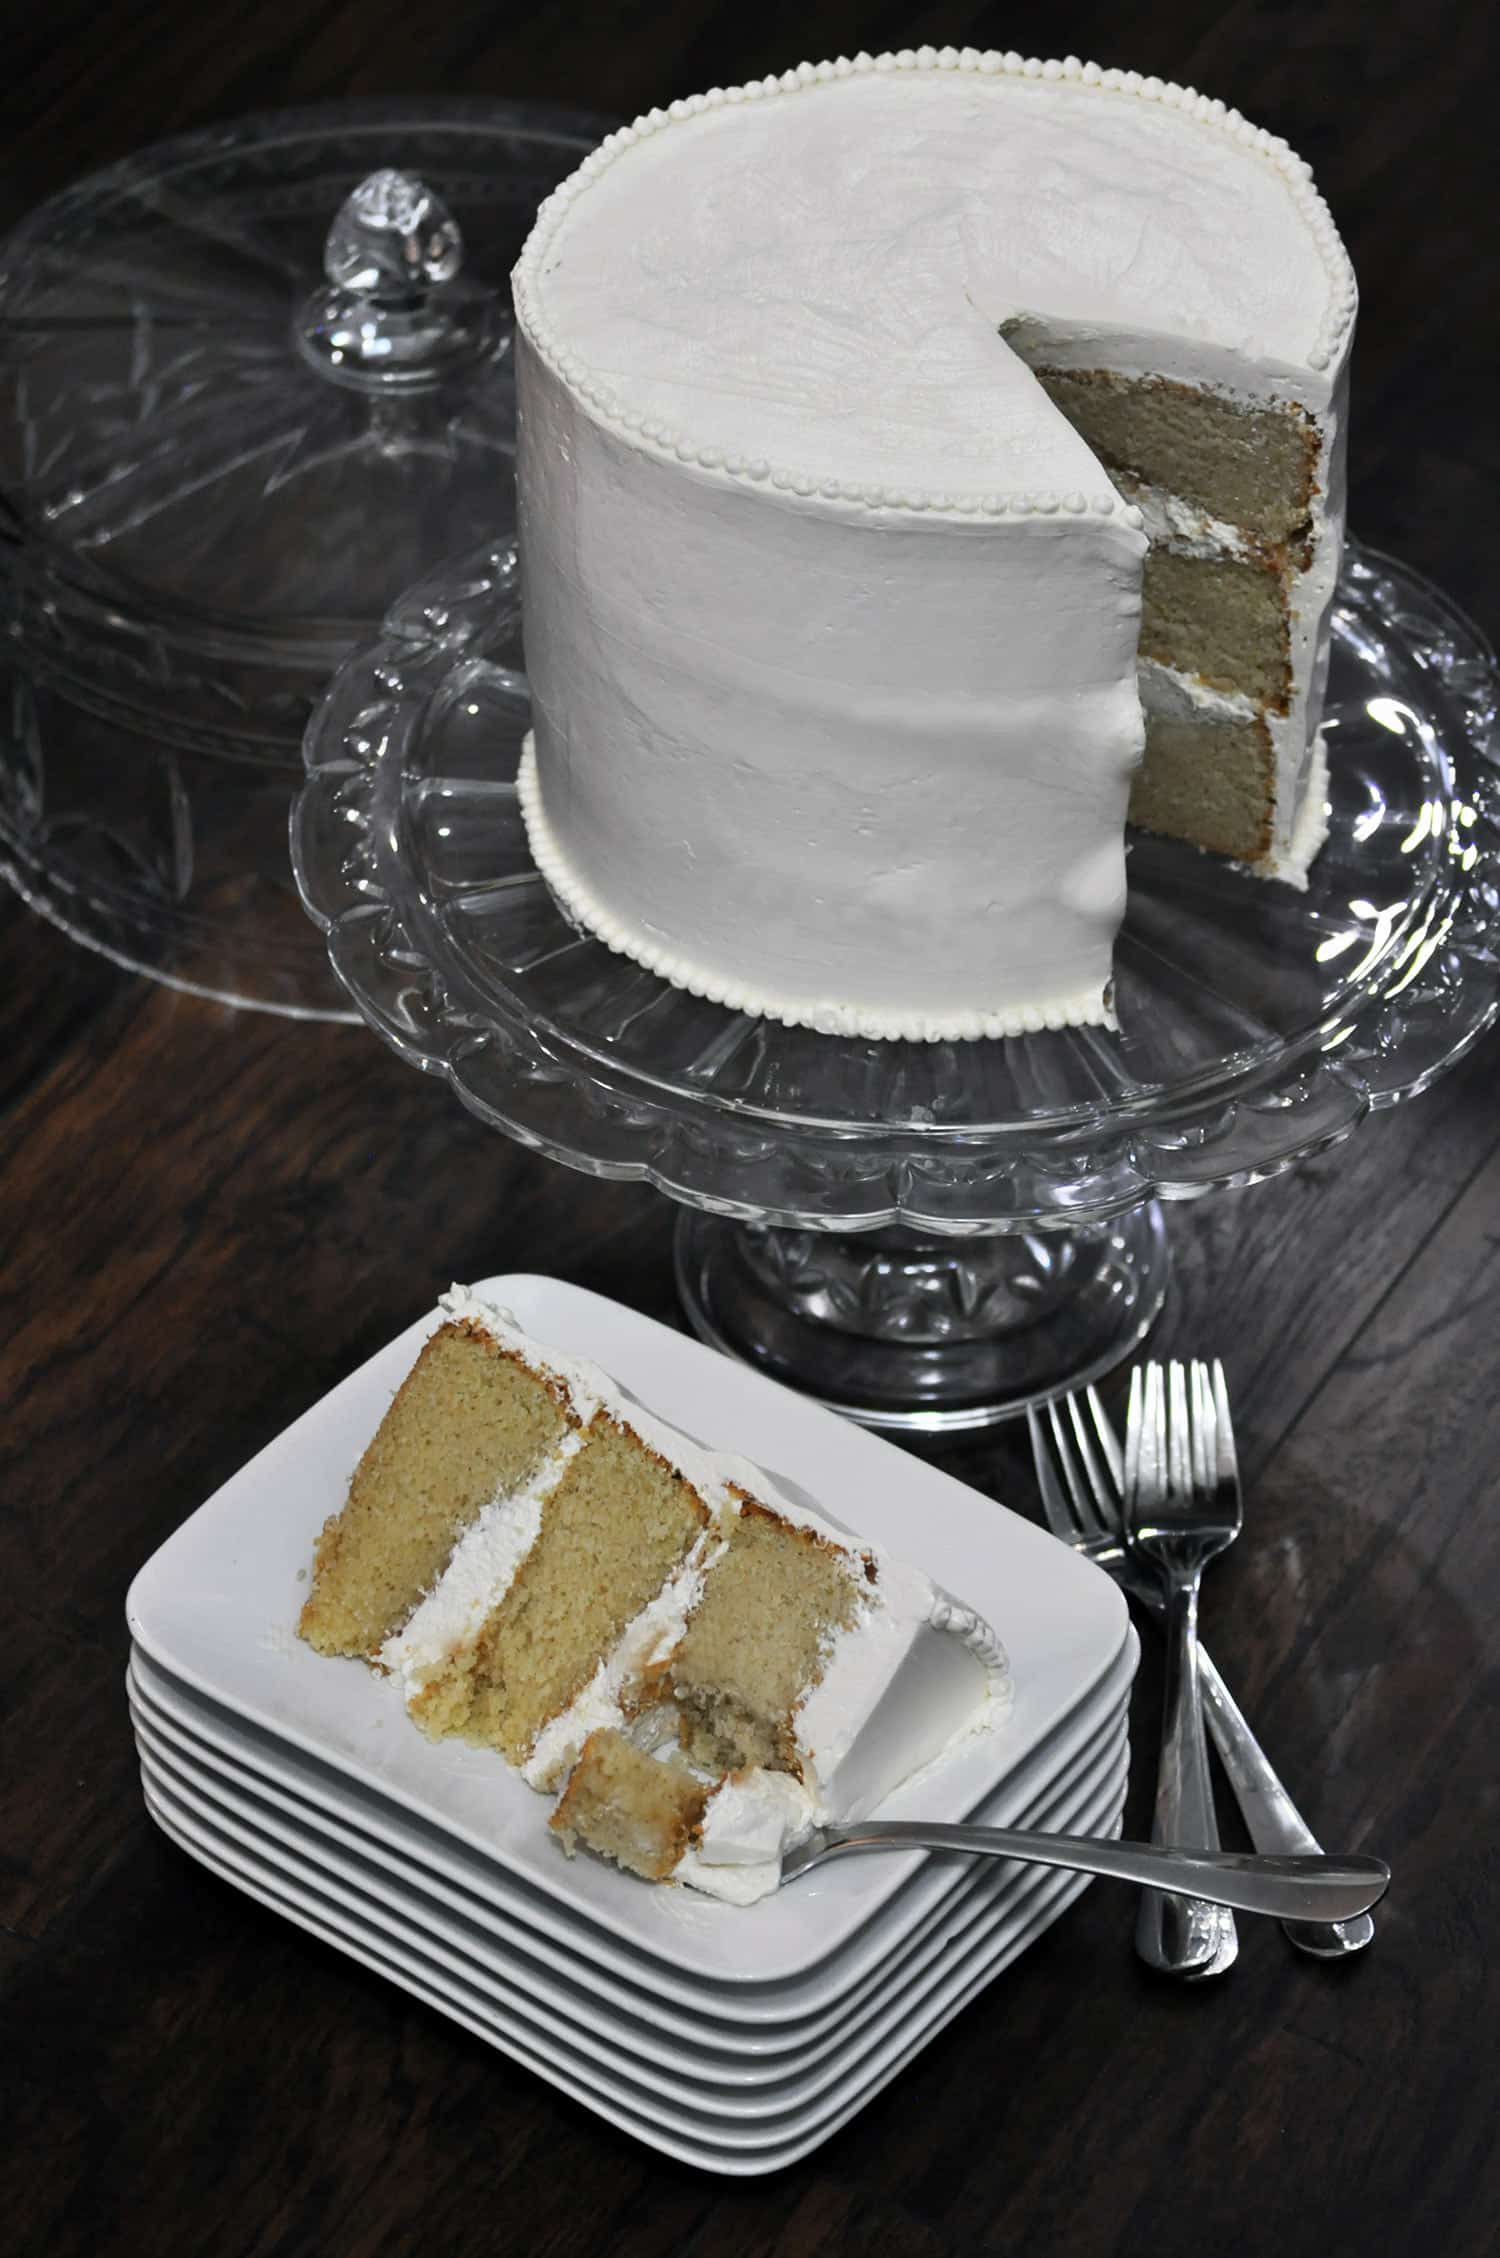 Kitchenaid Mixer White Cake Recipe